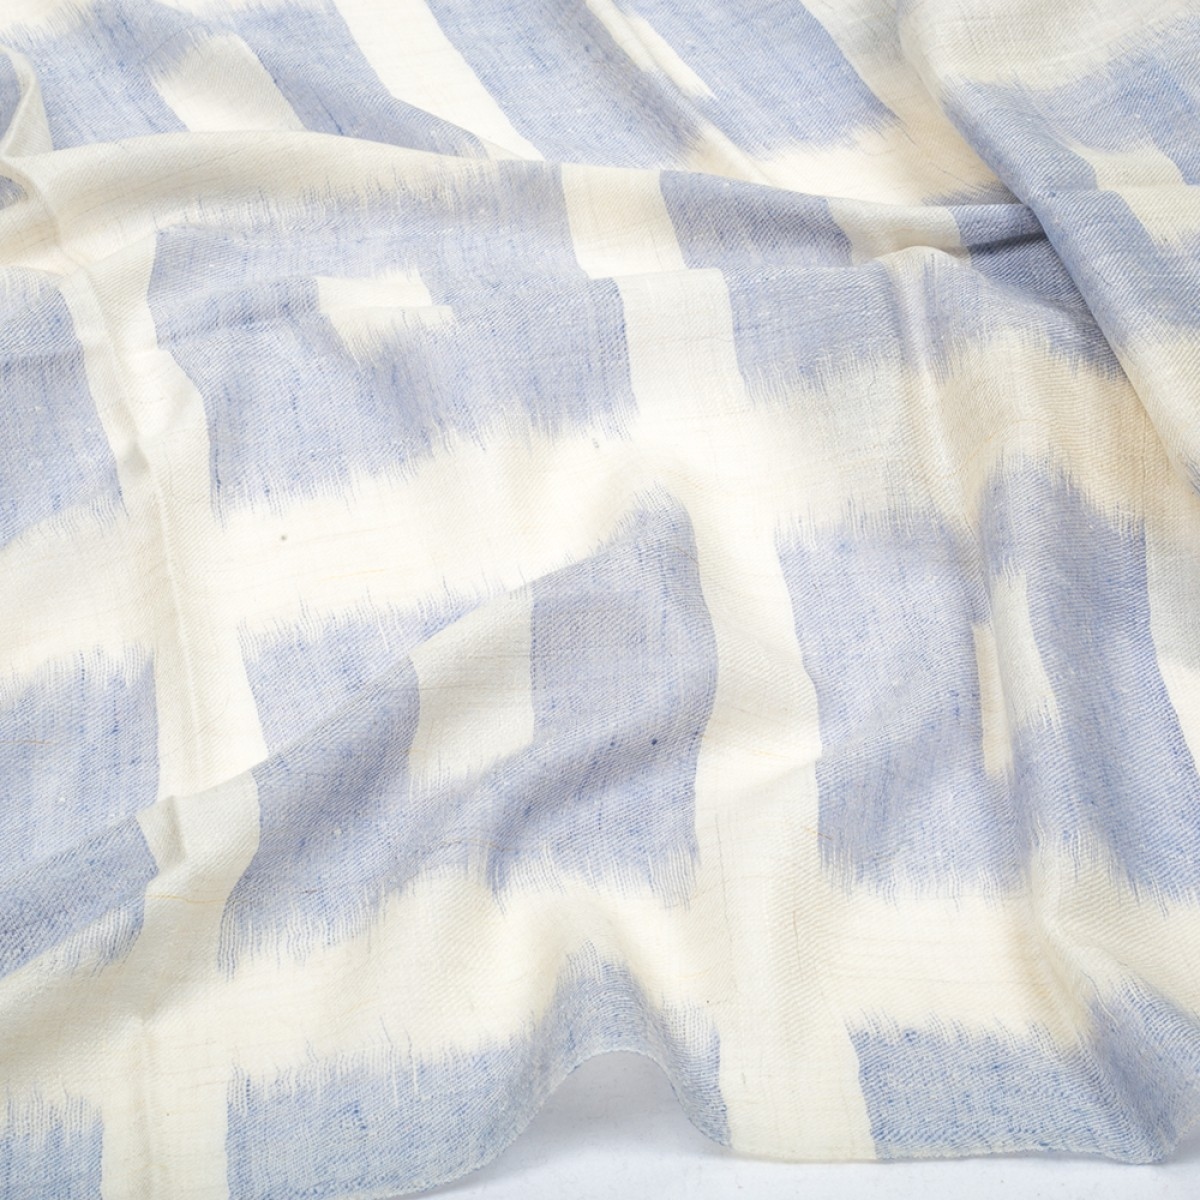 Ikat Cashmere Pashmina Stole - Light Blue & White